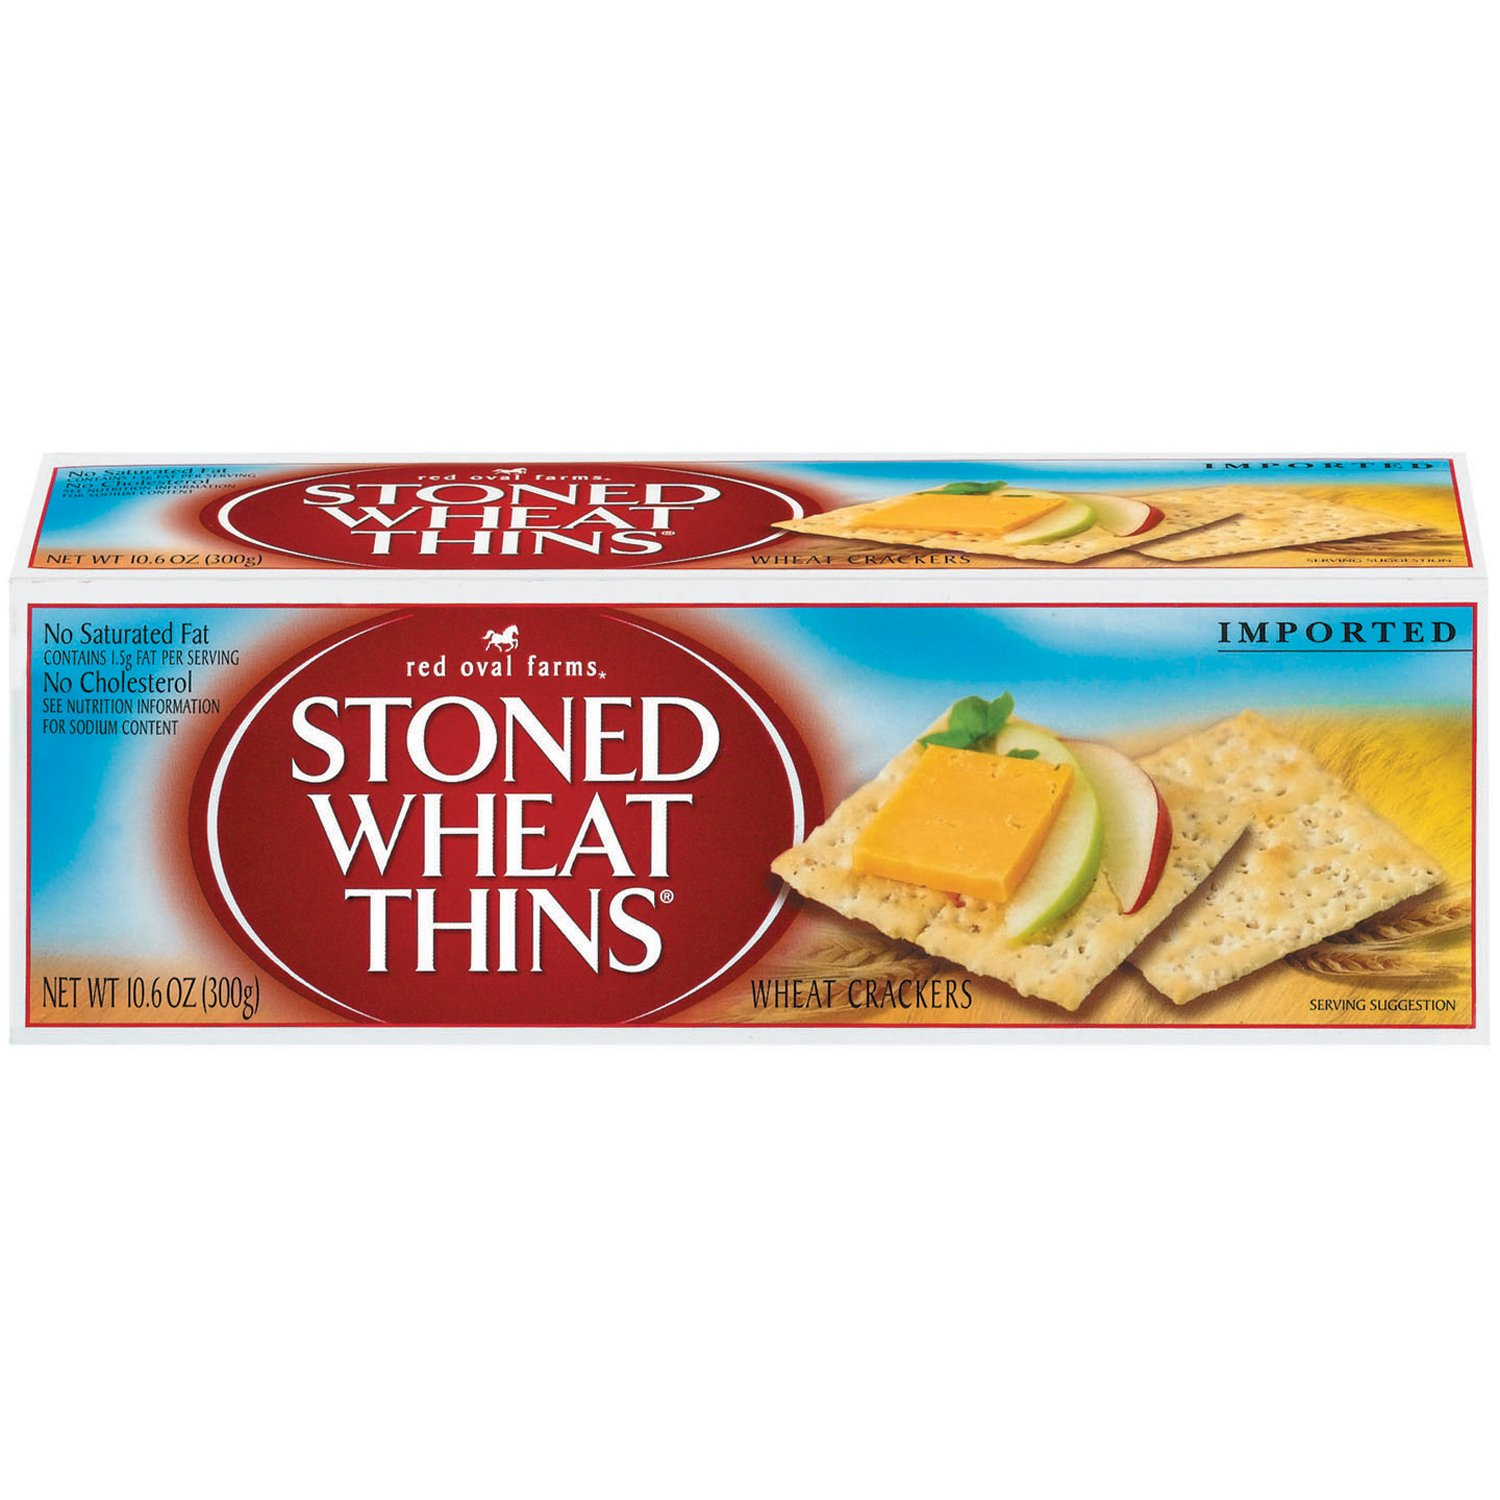 Red Oval Farms Stoned Wheat Thin Crackers, 10.6 Ounce (Pack of 12) by Wheat Thins (Image #1)